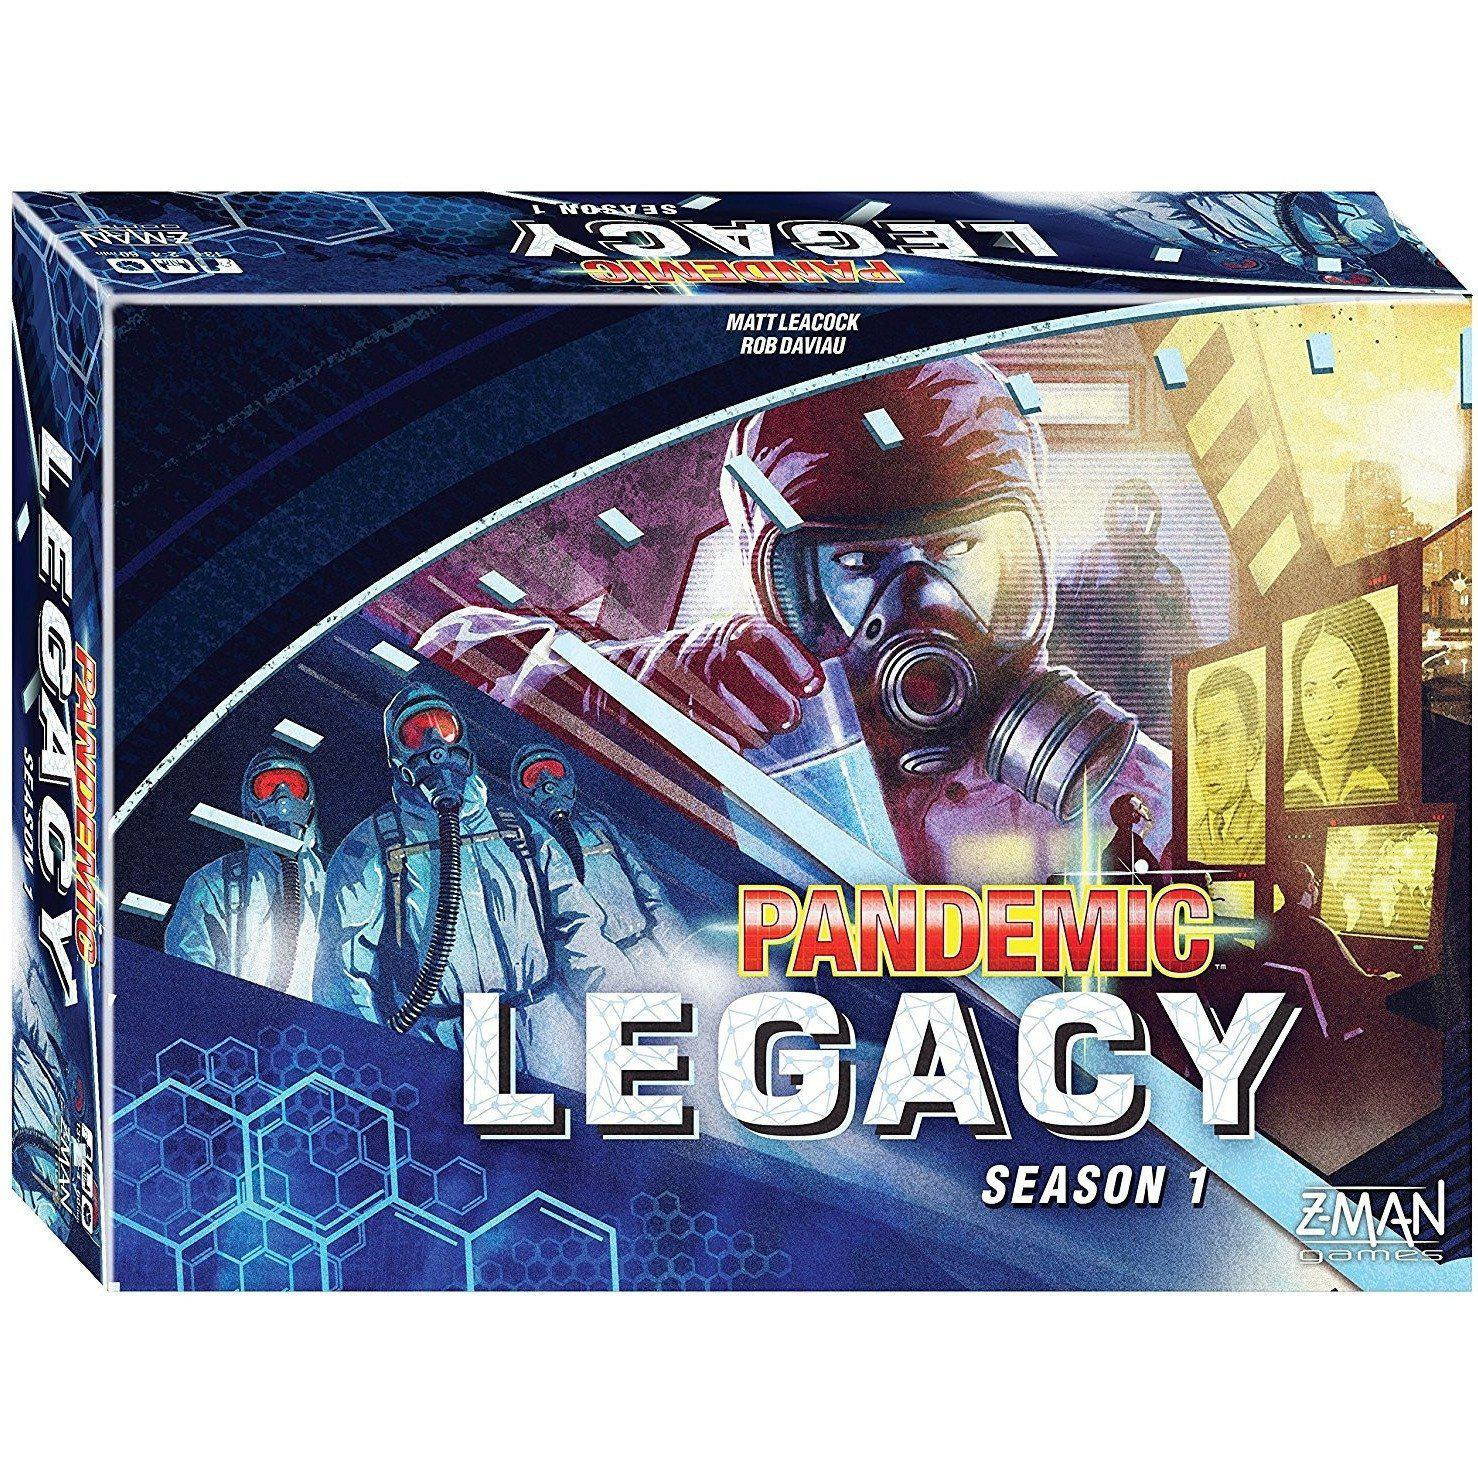 Pandemic Legacy (Blue Edition) S1